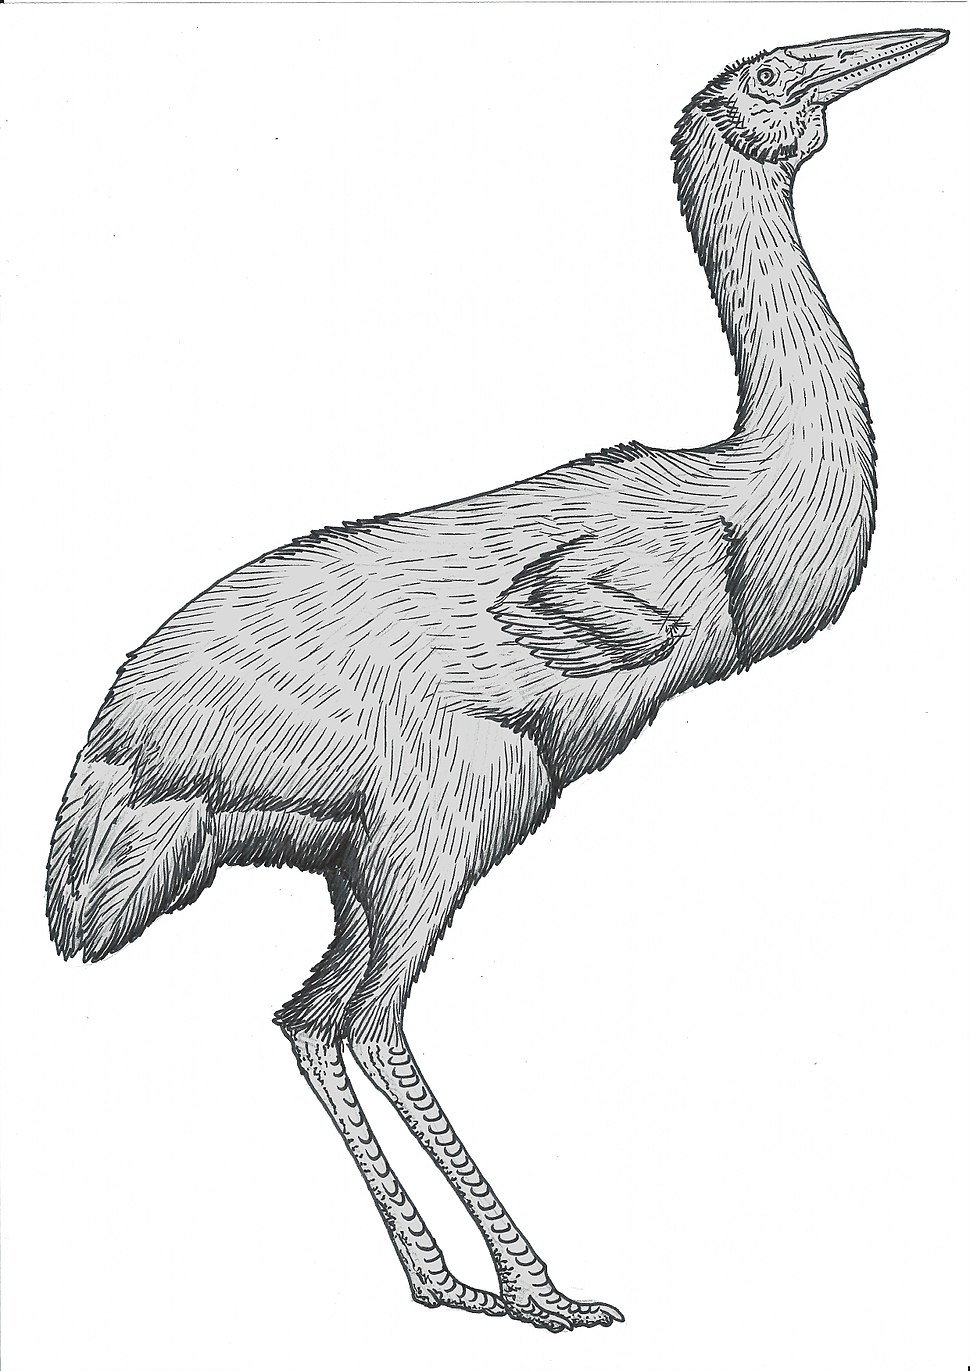 Ergilornis-commission